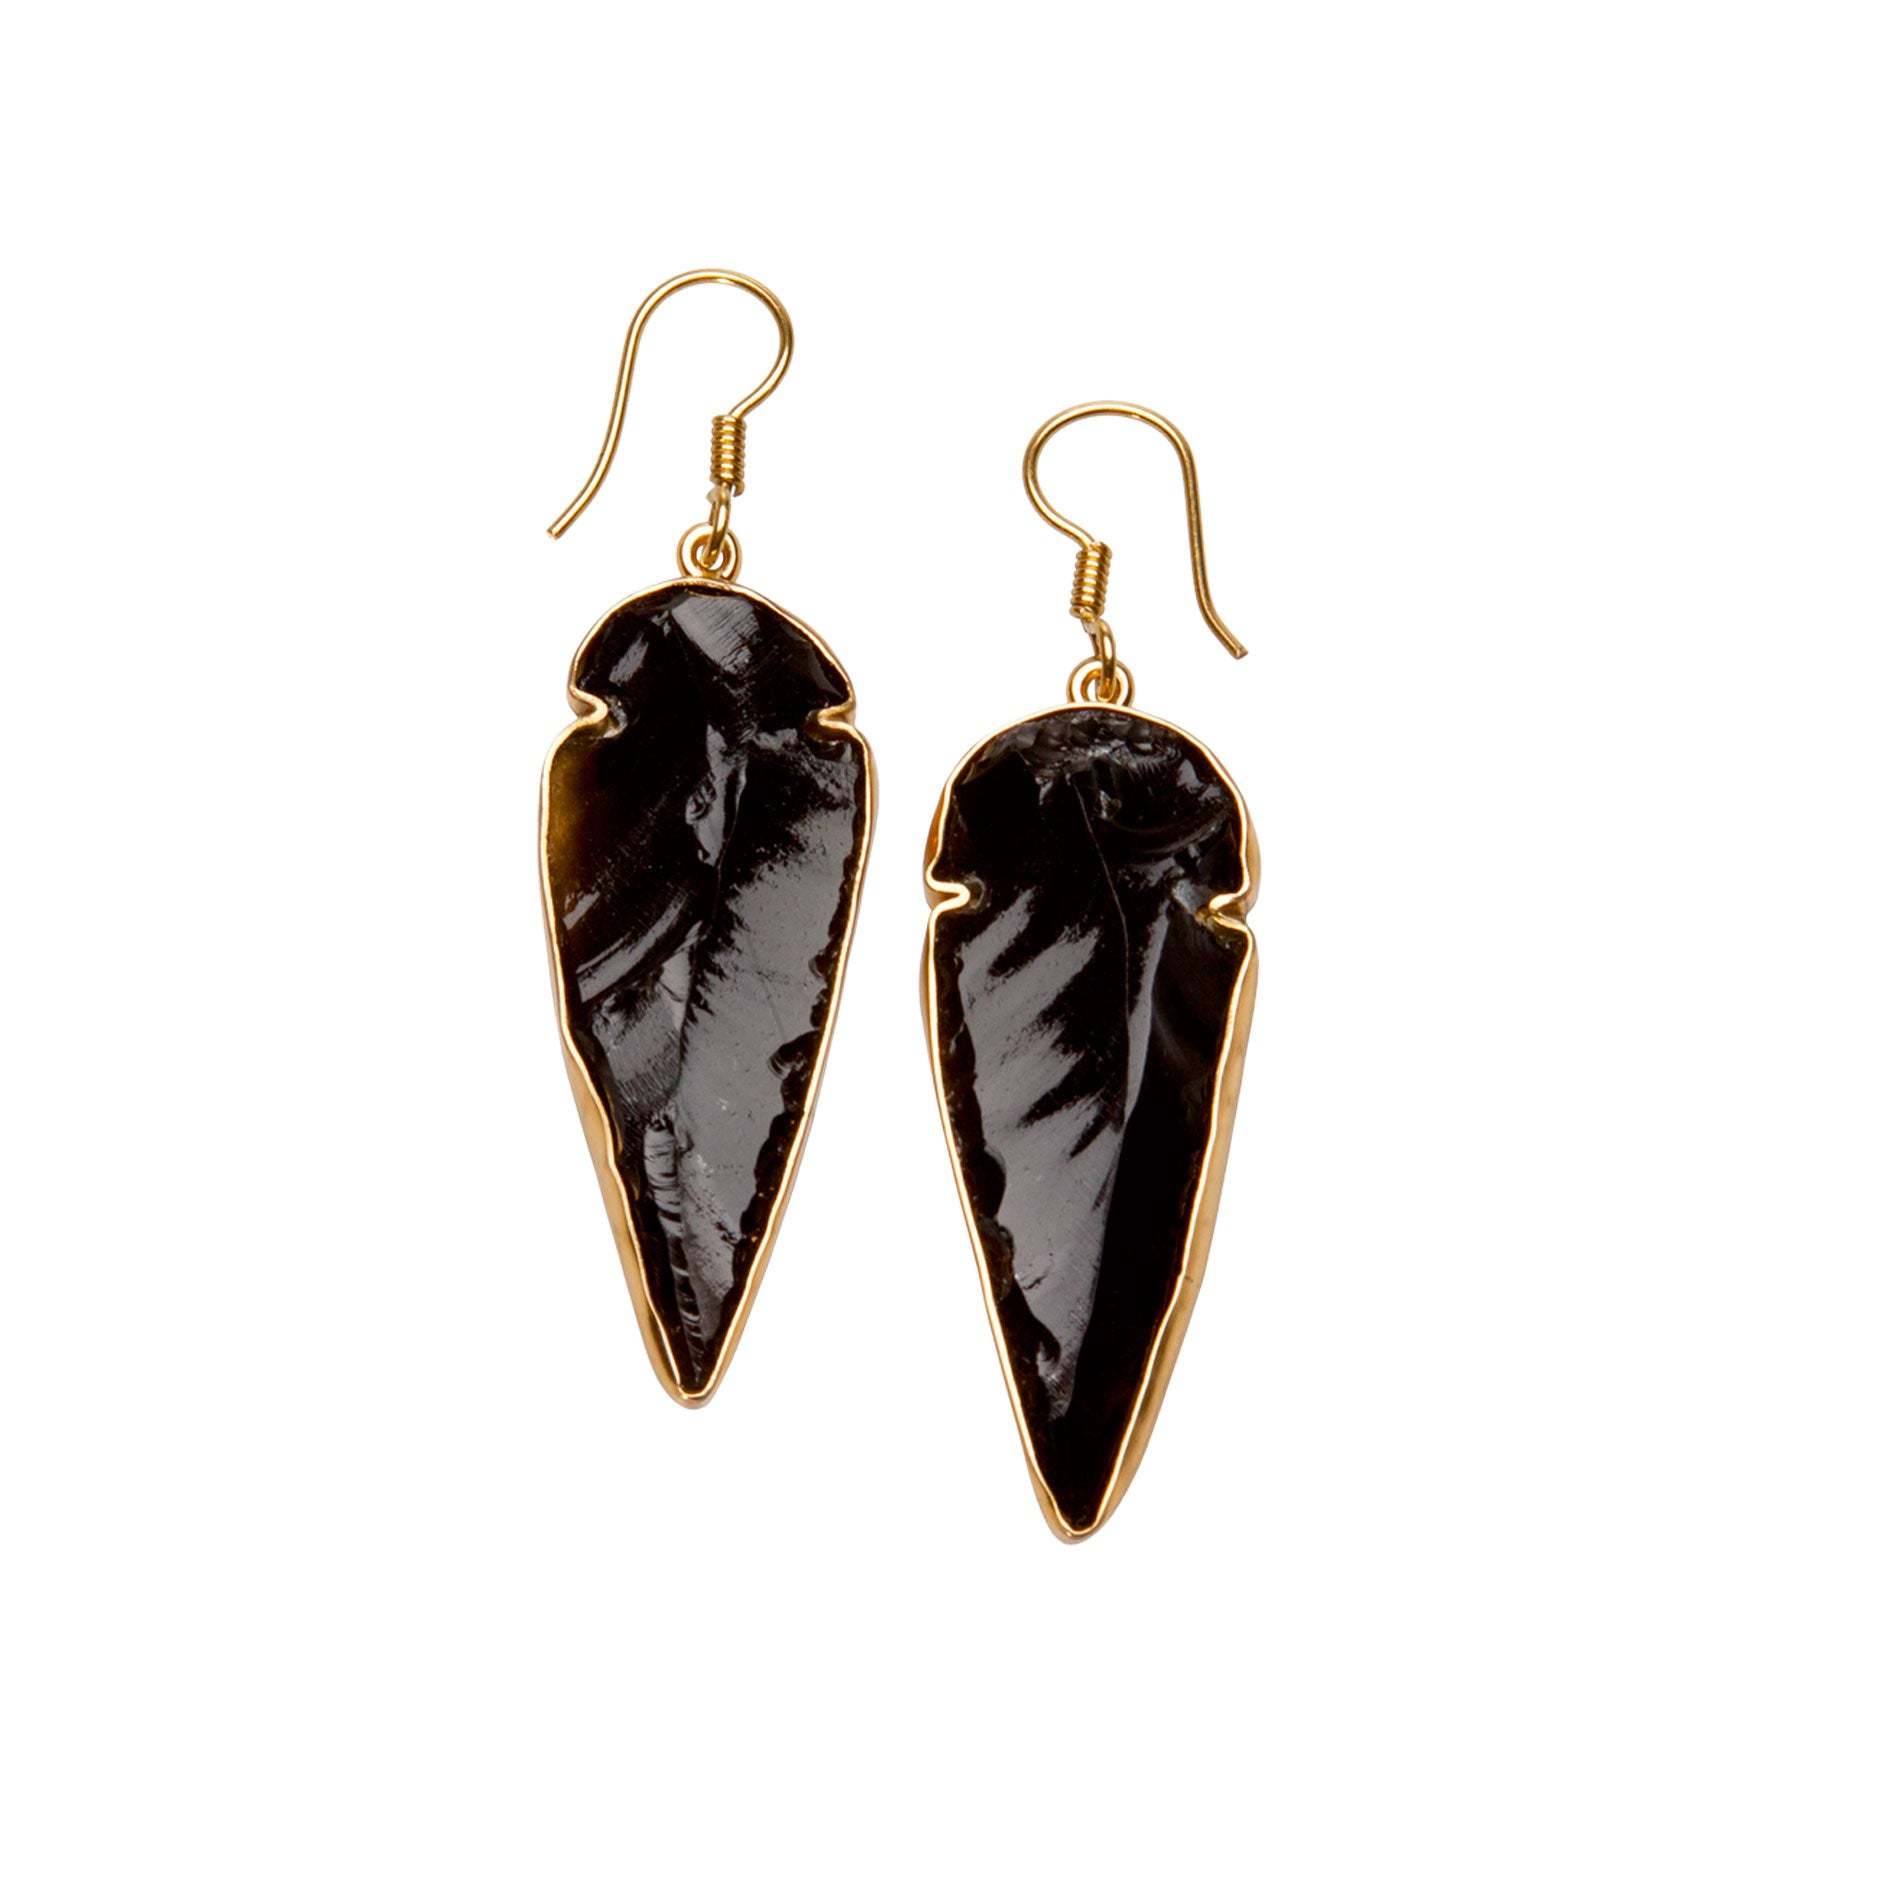 Alchemia Obsidian Arrowhead Drop Earrings | Charles Albert Jewelry